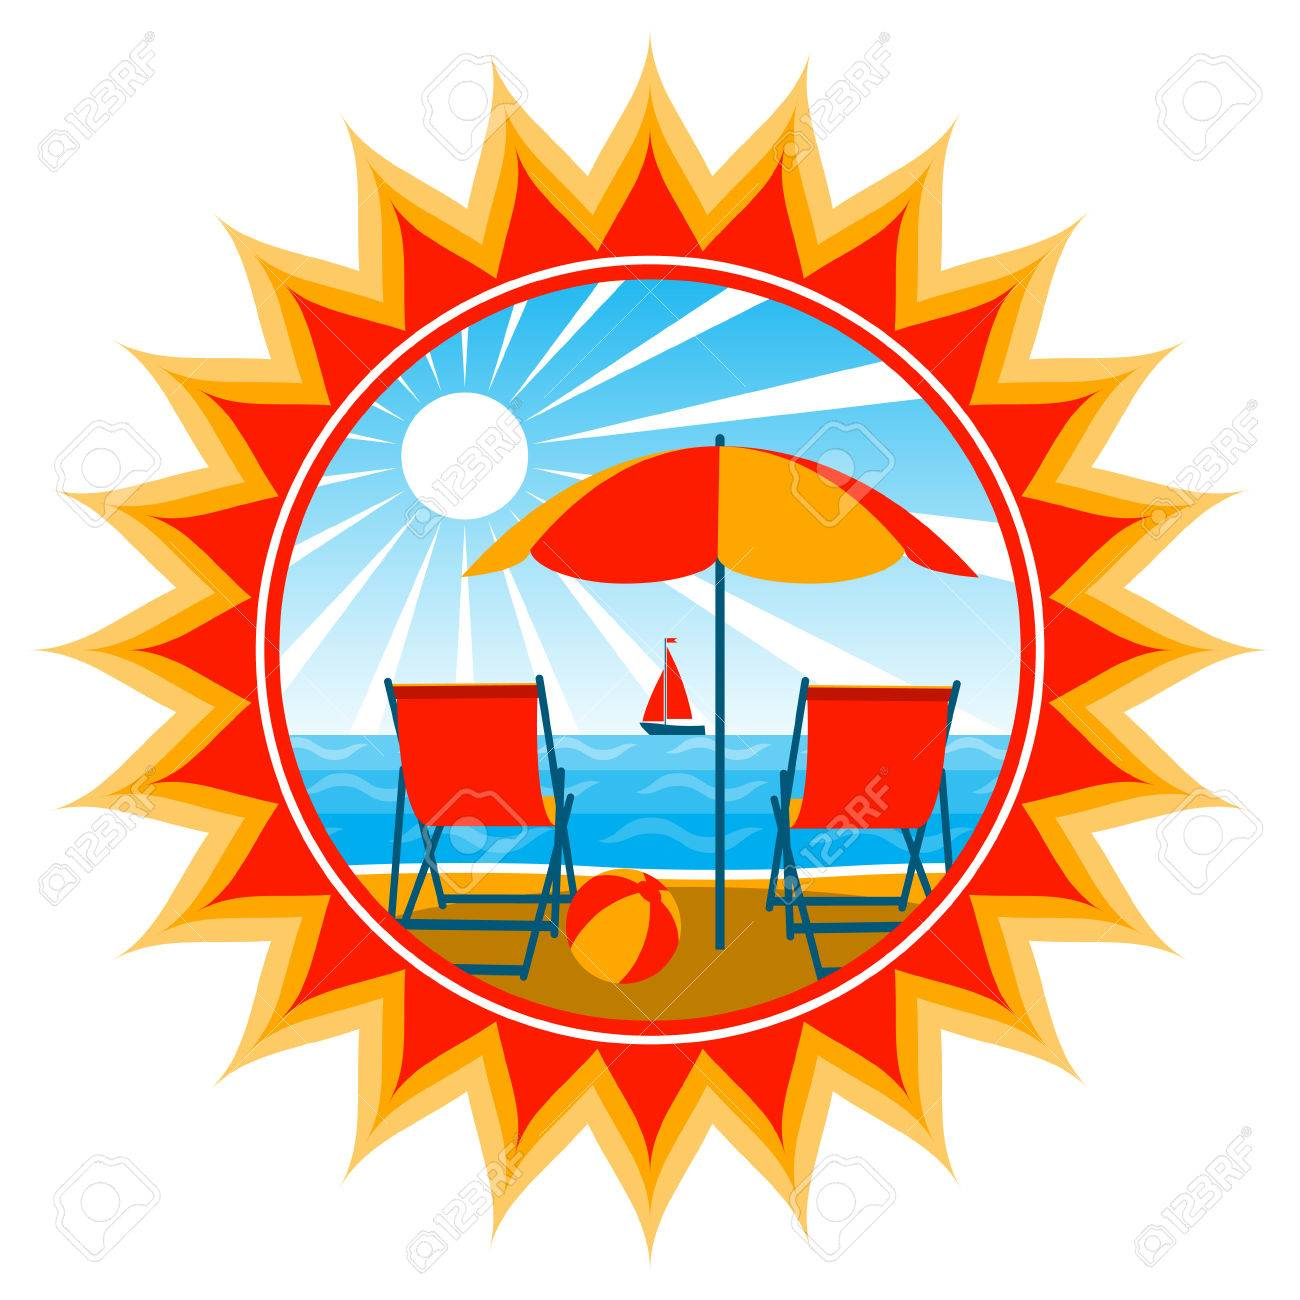 deck chairs under umbrella on the beach Stock Vector - 8457369